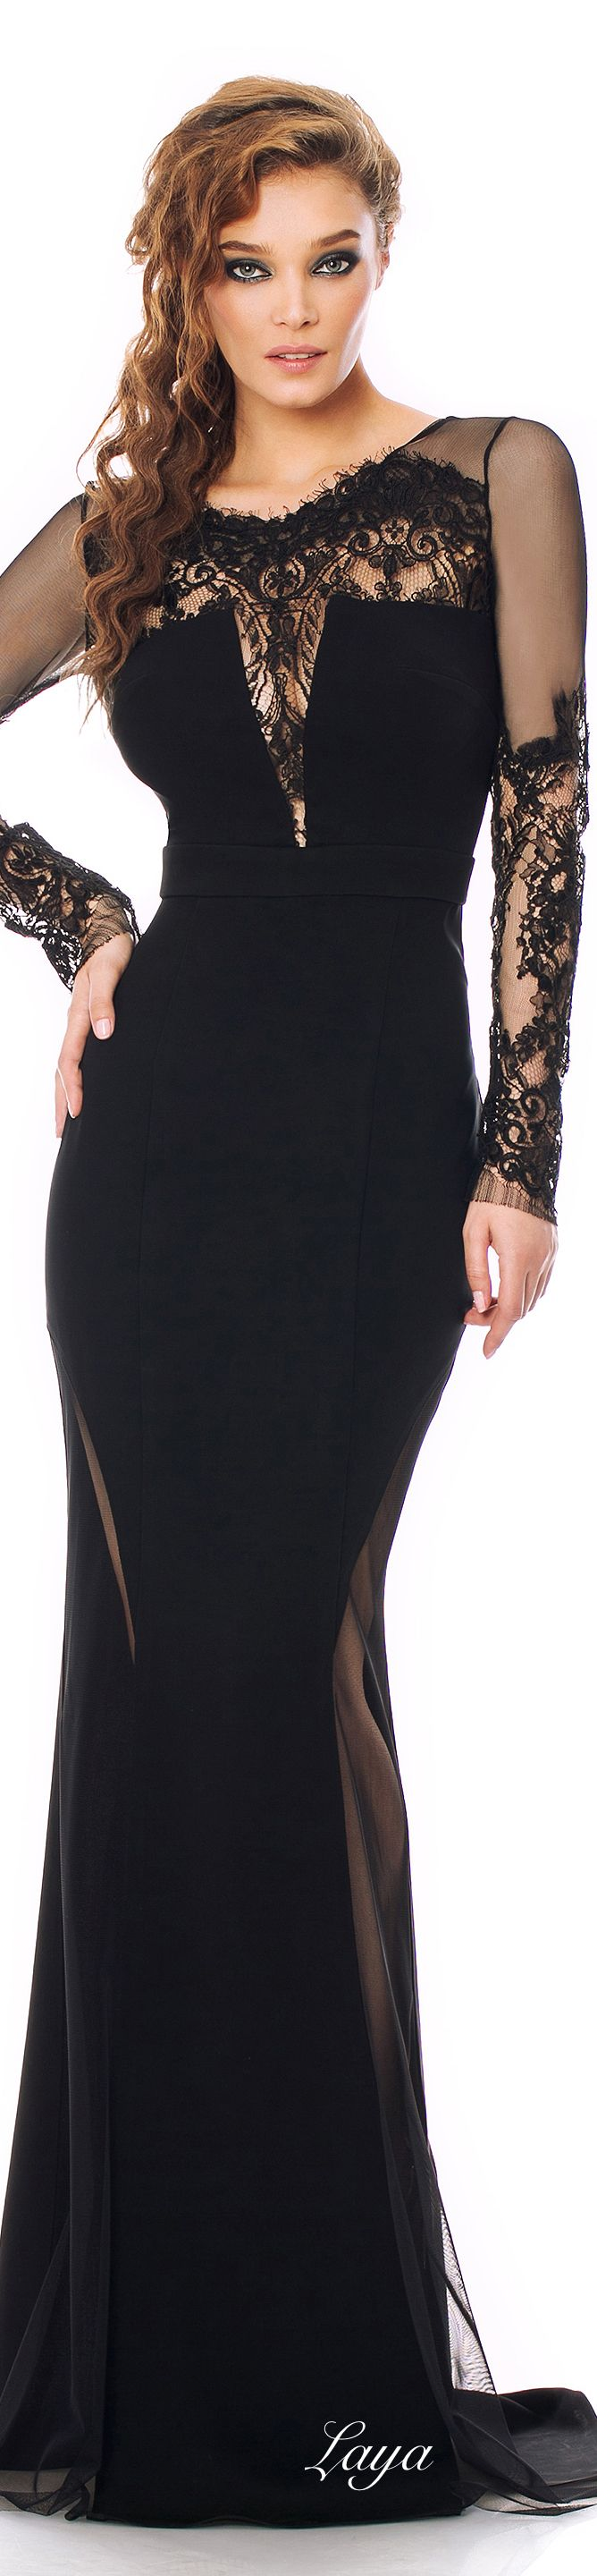 CRISTALLINI Fall-Winter 2014-15 EVENING Dresses